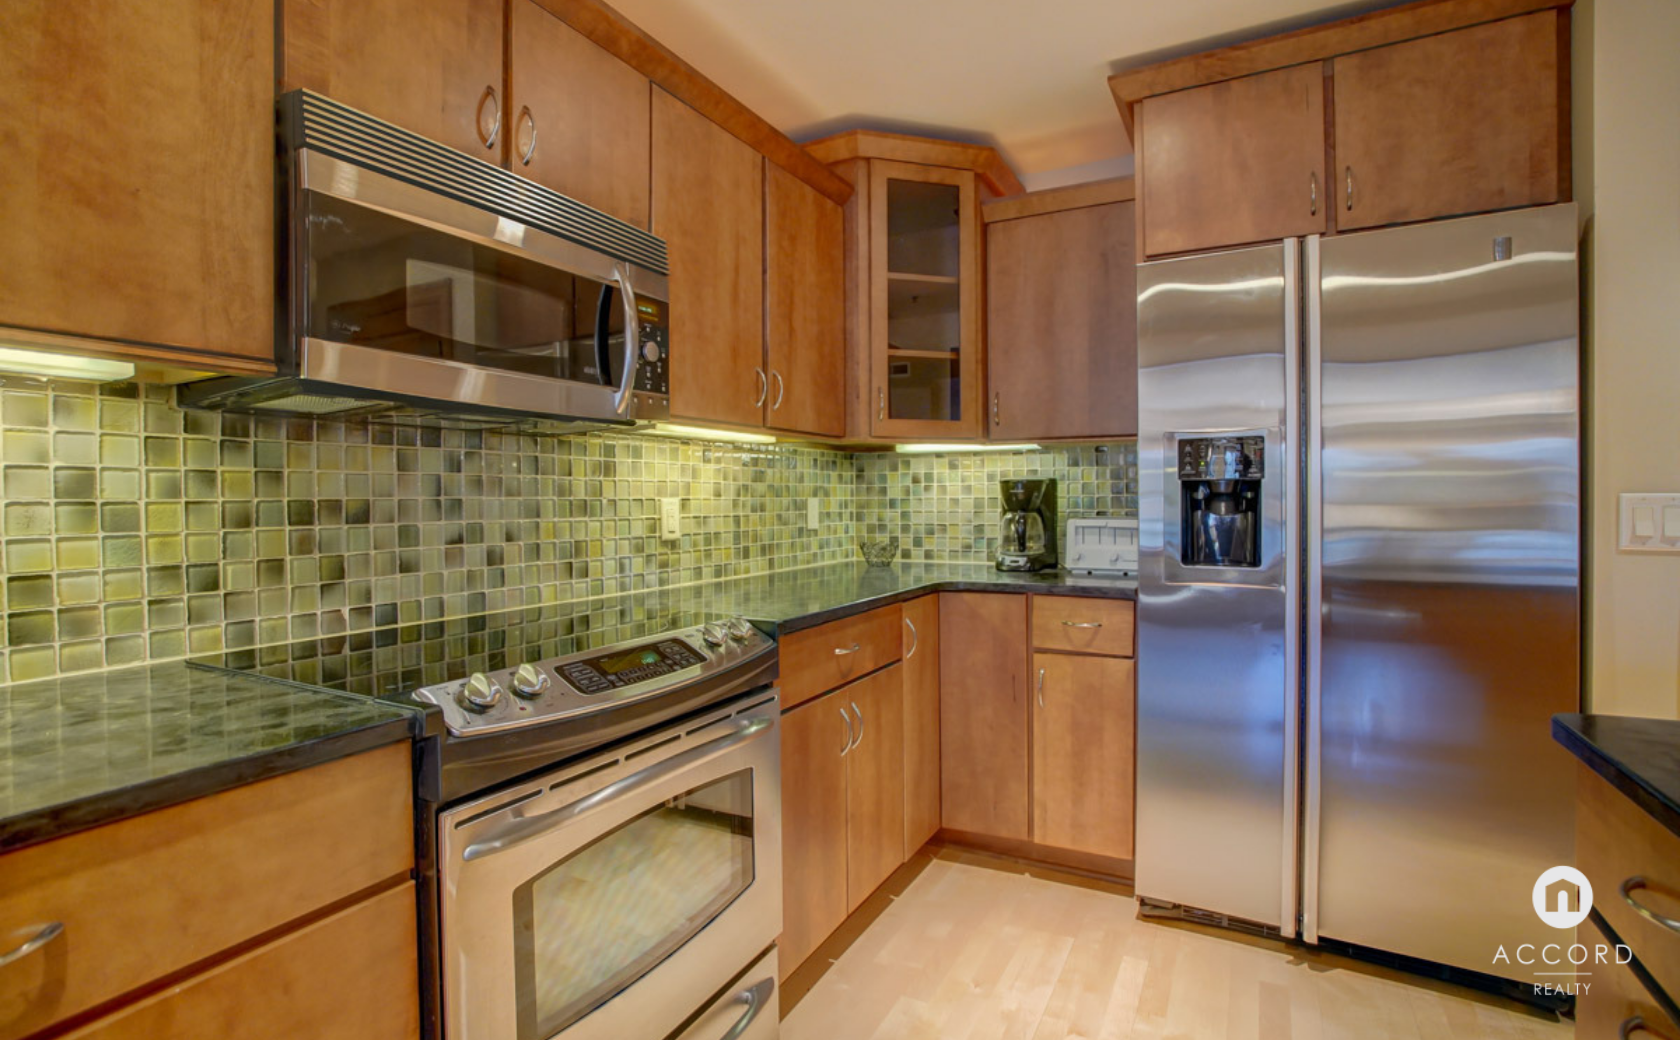 123 W Washington Ave #303 Madison, WI 53703 - Kitchen2.png